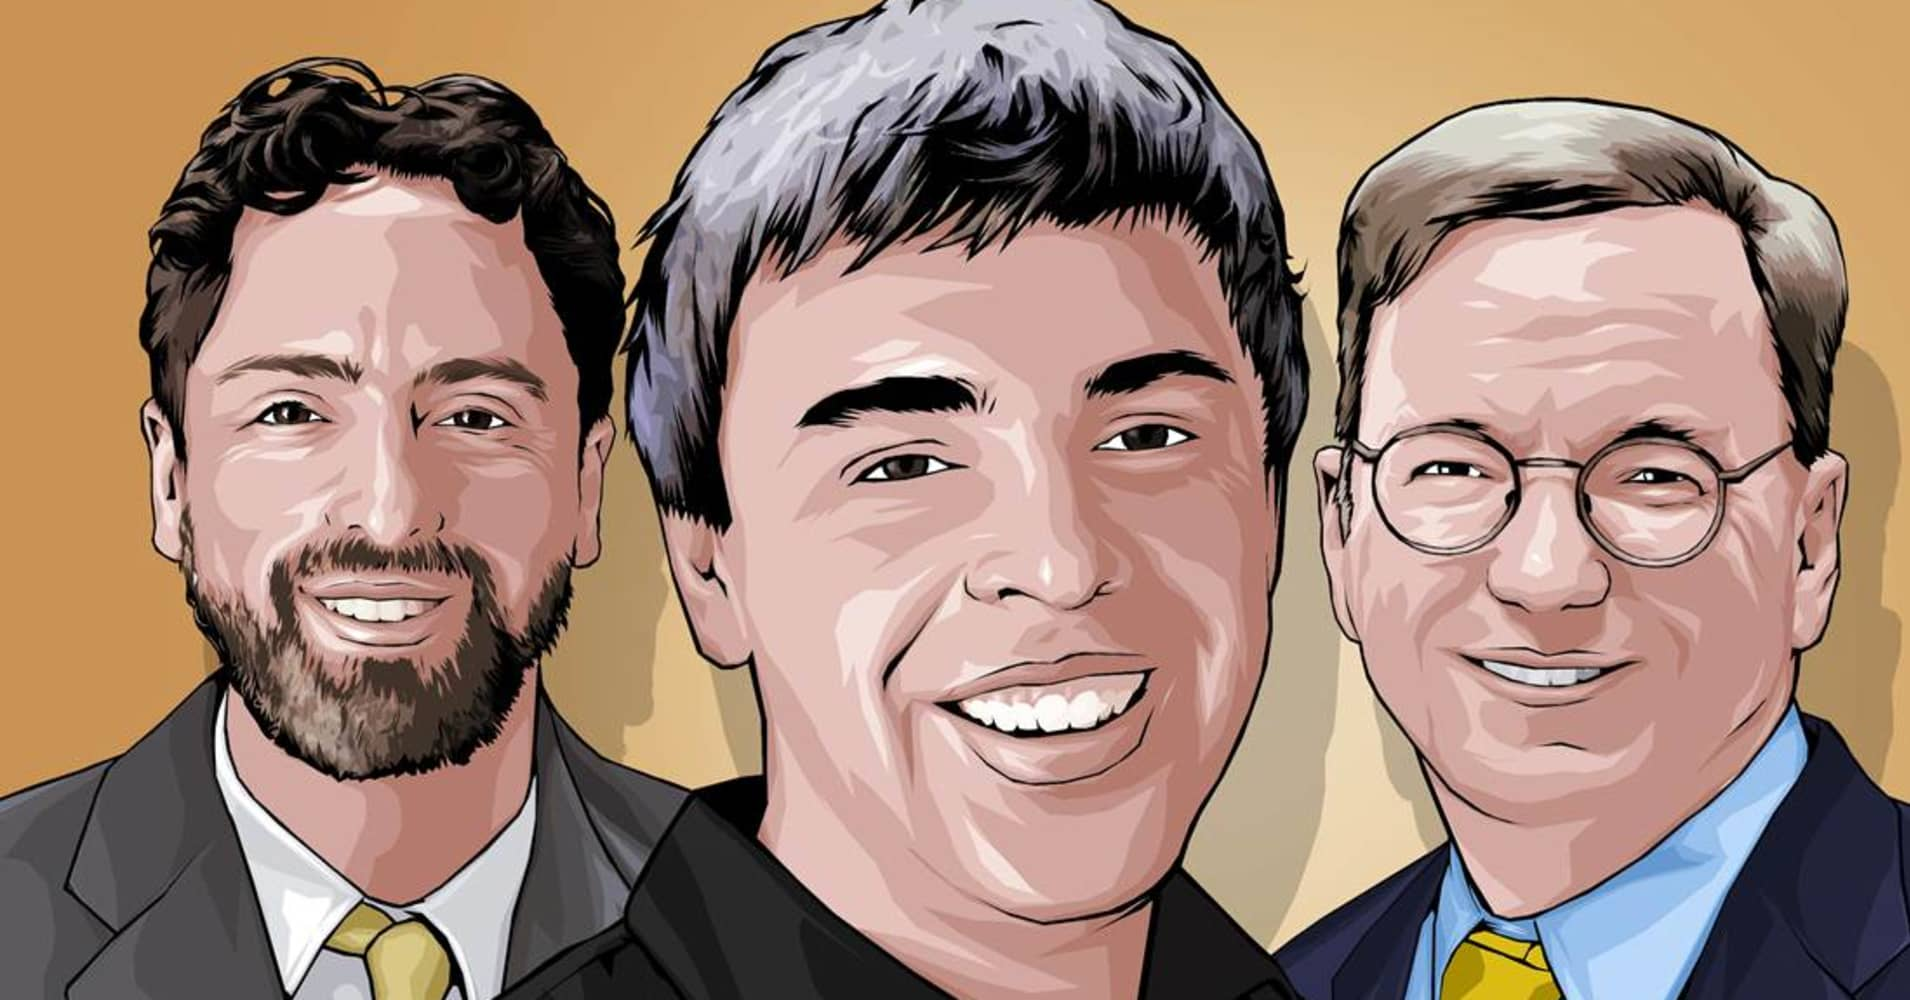 from Prince google larry page eric schmidt are gay